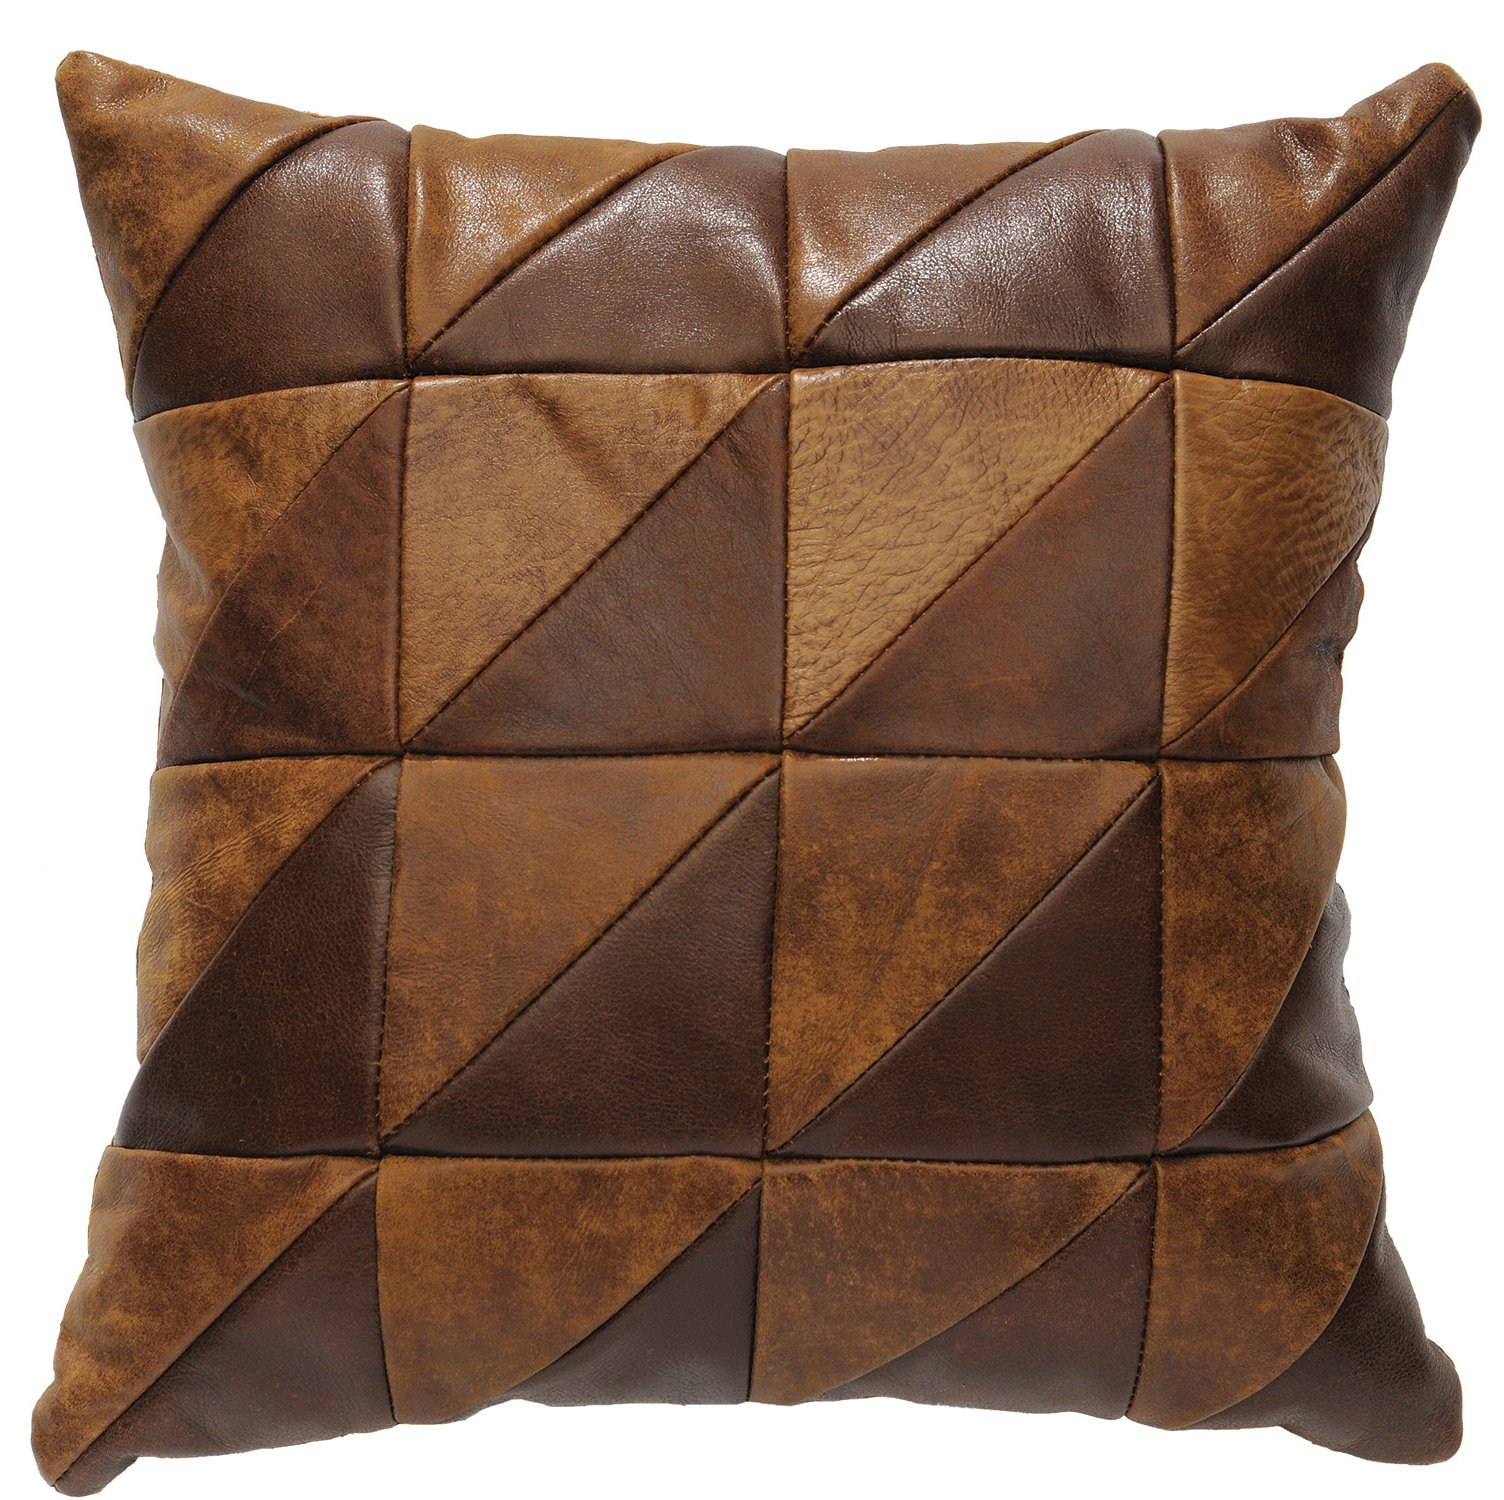 Wooded River Stone Mill Square Pillow by Wooded River